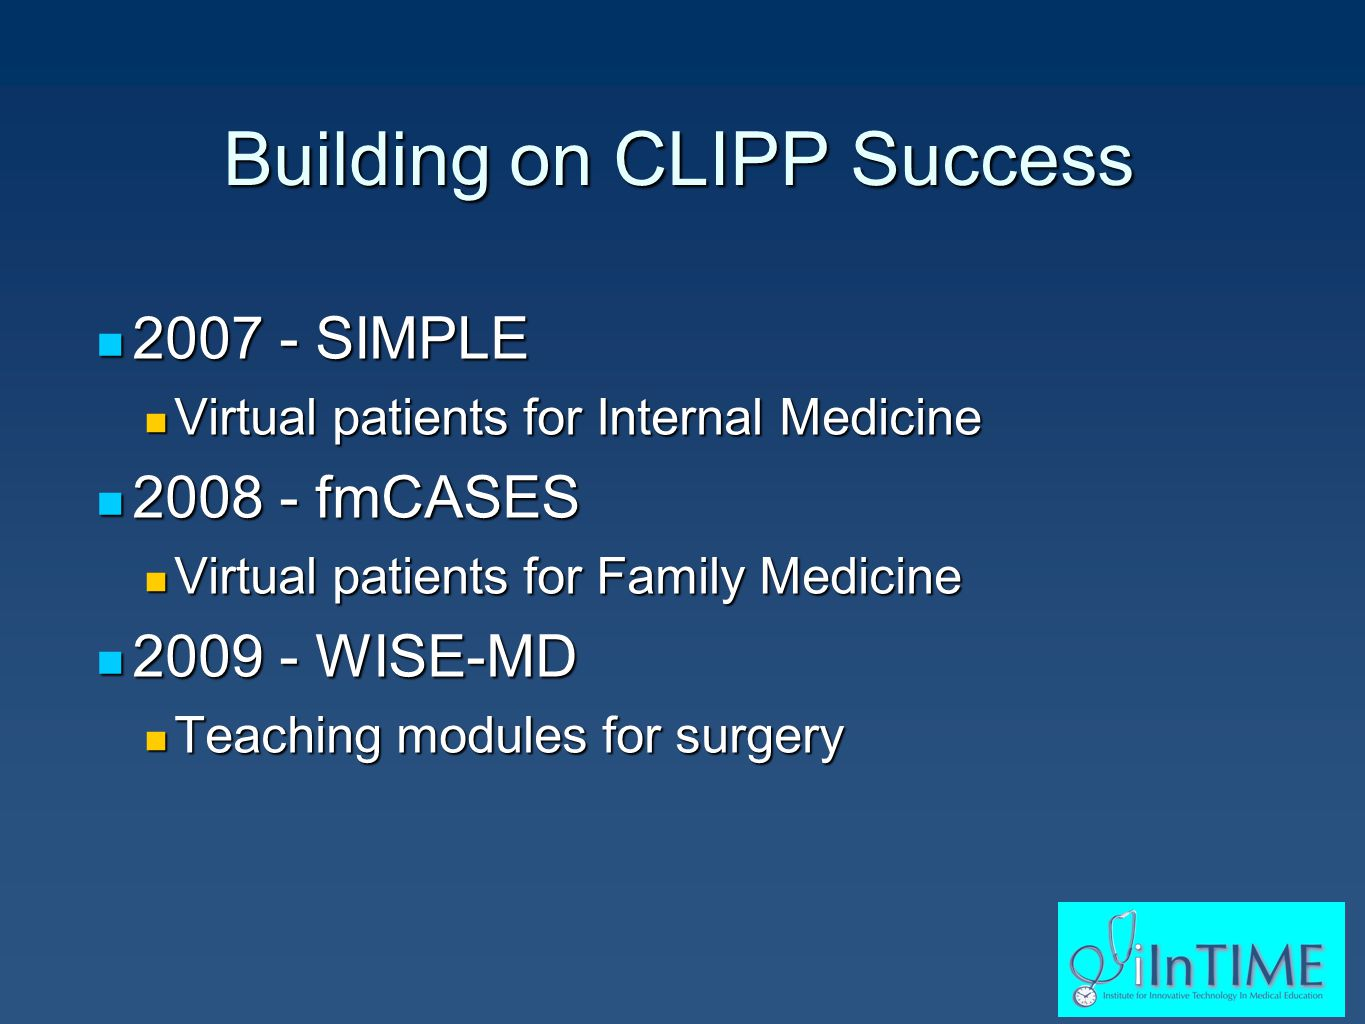 Building on CLIPP Success 2007 - SIMPLE 2007 - SIMPLE Virtual patients for Internal Medicine Virtual patients for Internal Medicine 2008 - fmCASES 2008 - fmCASES Virtual patients for Family Medicine Virtual patients for Family Medicine 2009 - WISE-MD 2009 - WISE-MD Teaching modules for surgery Teaching modules for surgery